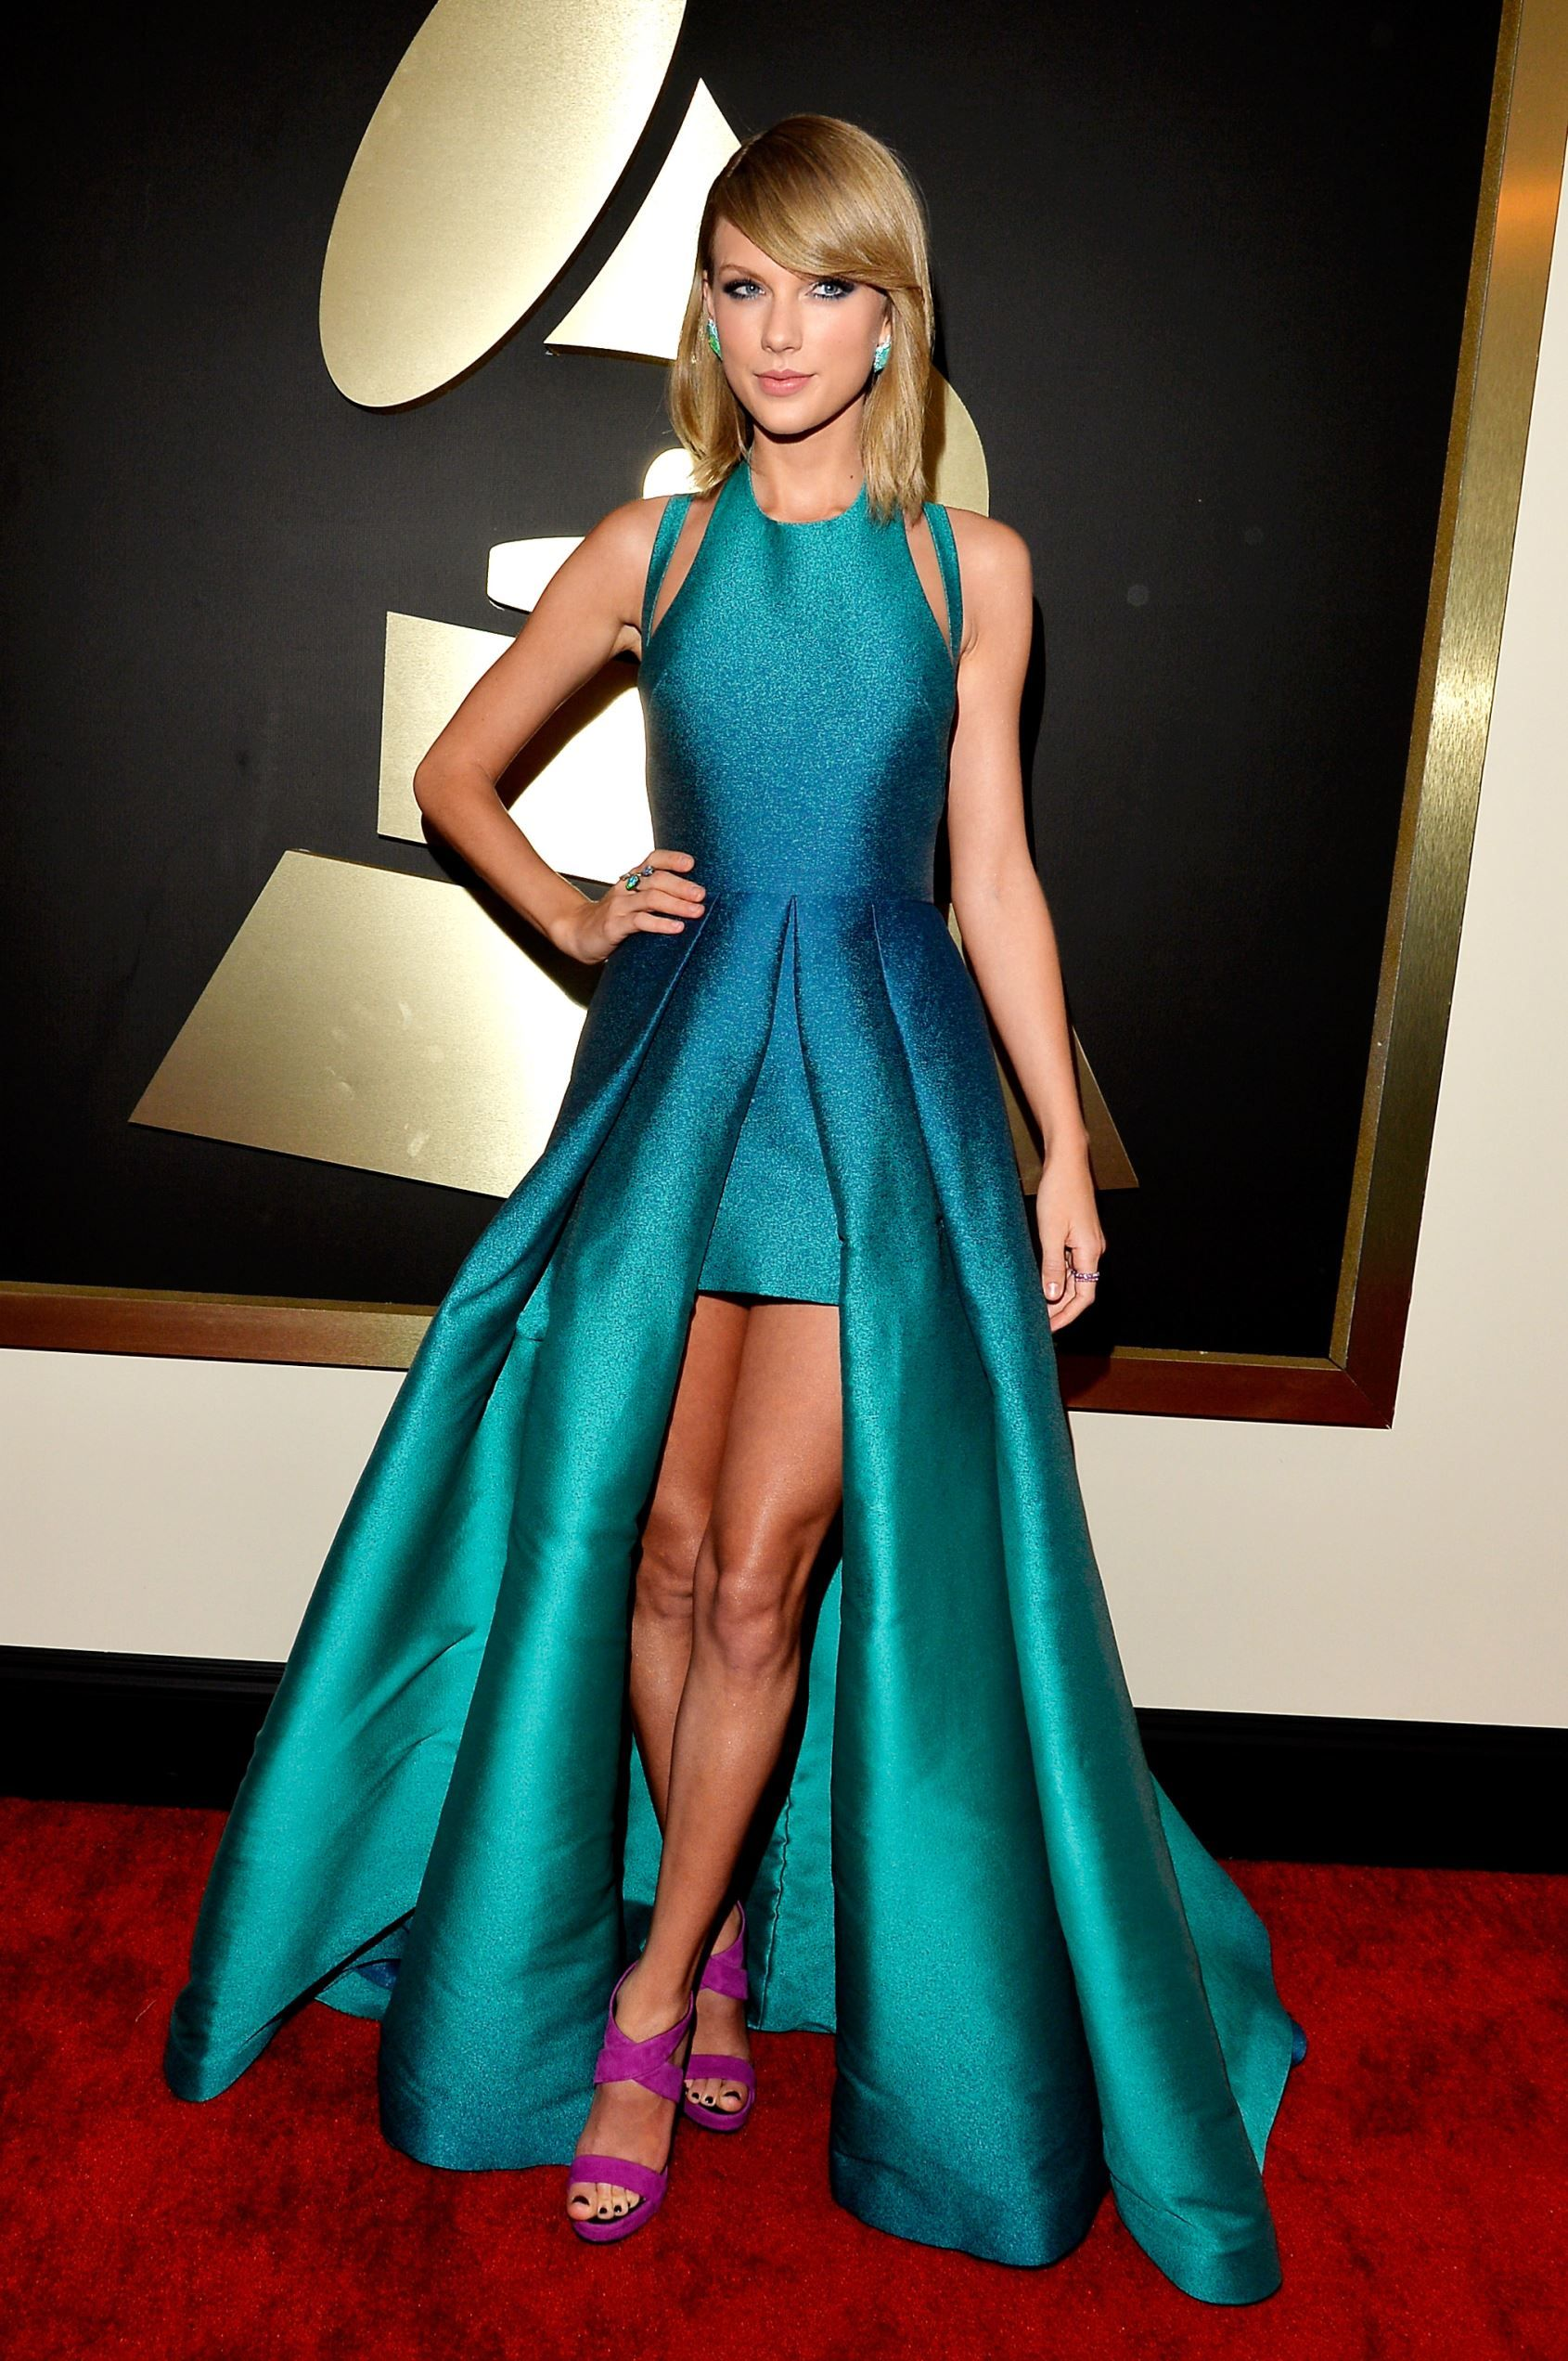 Taylor Swift Roter Teppich Fashion Hits And Misses From The 2015 Grammy Awards